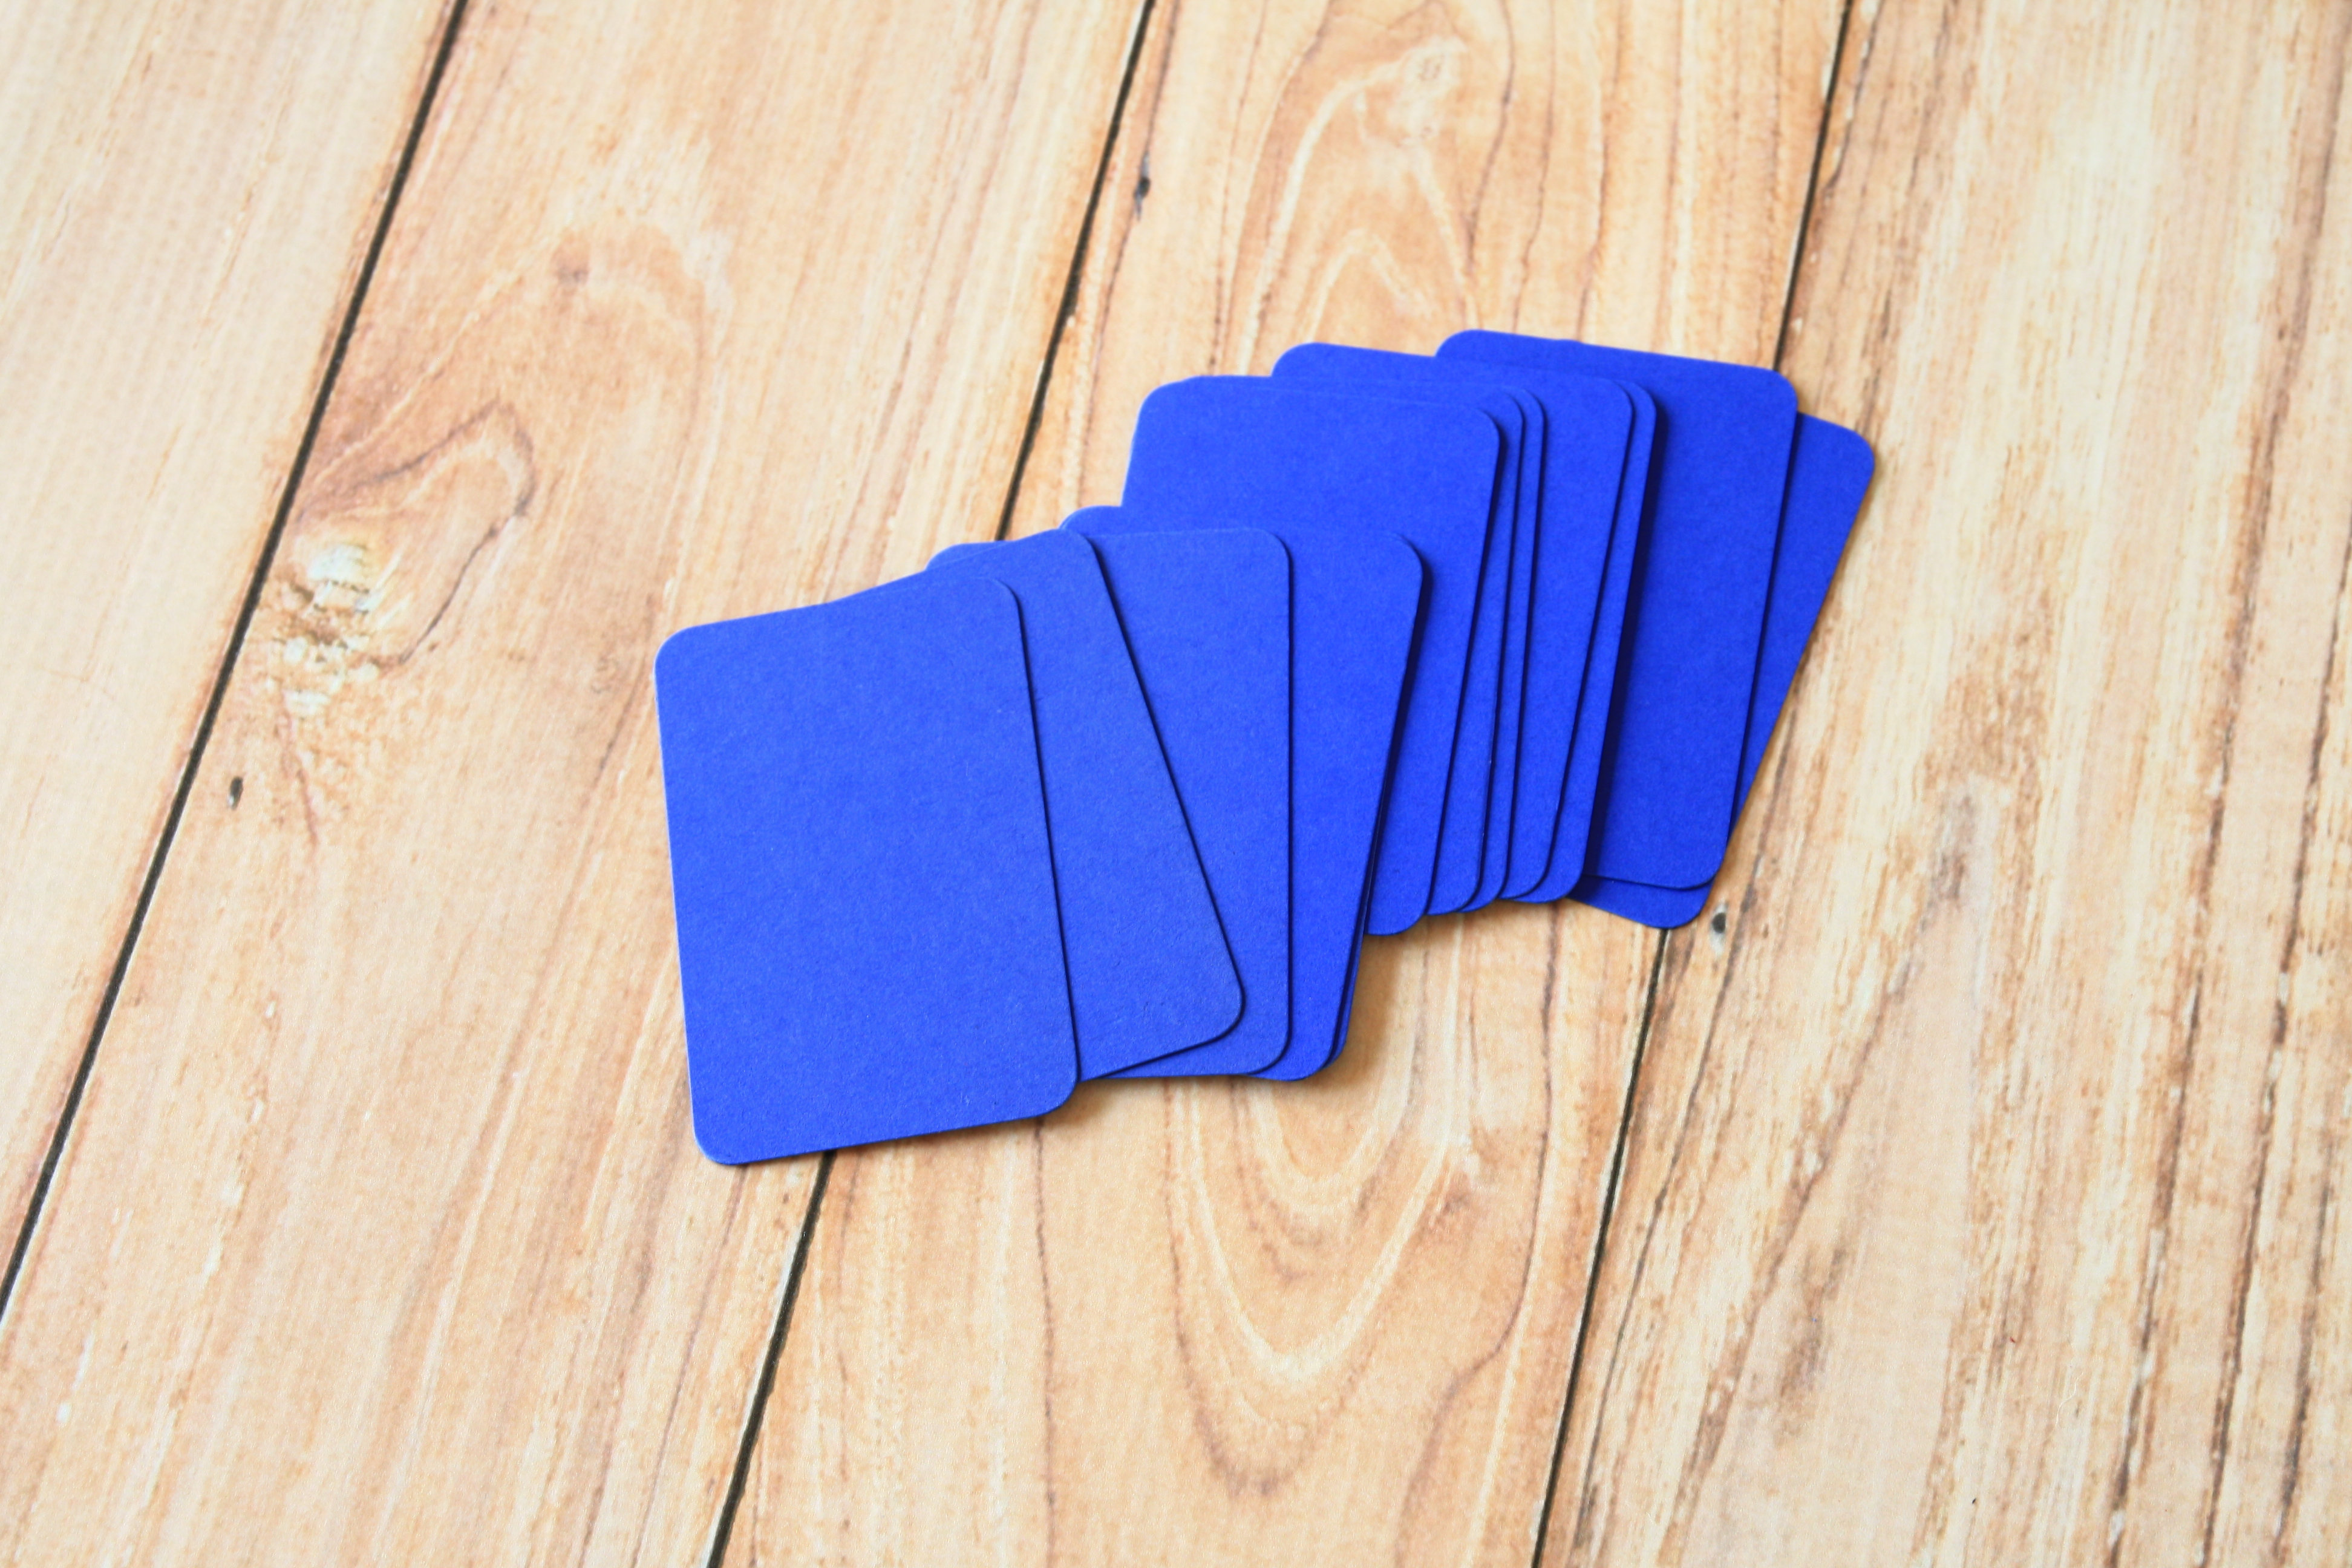 Royal blue blank business cards very eco friendly these are ready to use for customized stamped business name cards hang tags mini post cards or reheart Choice Image